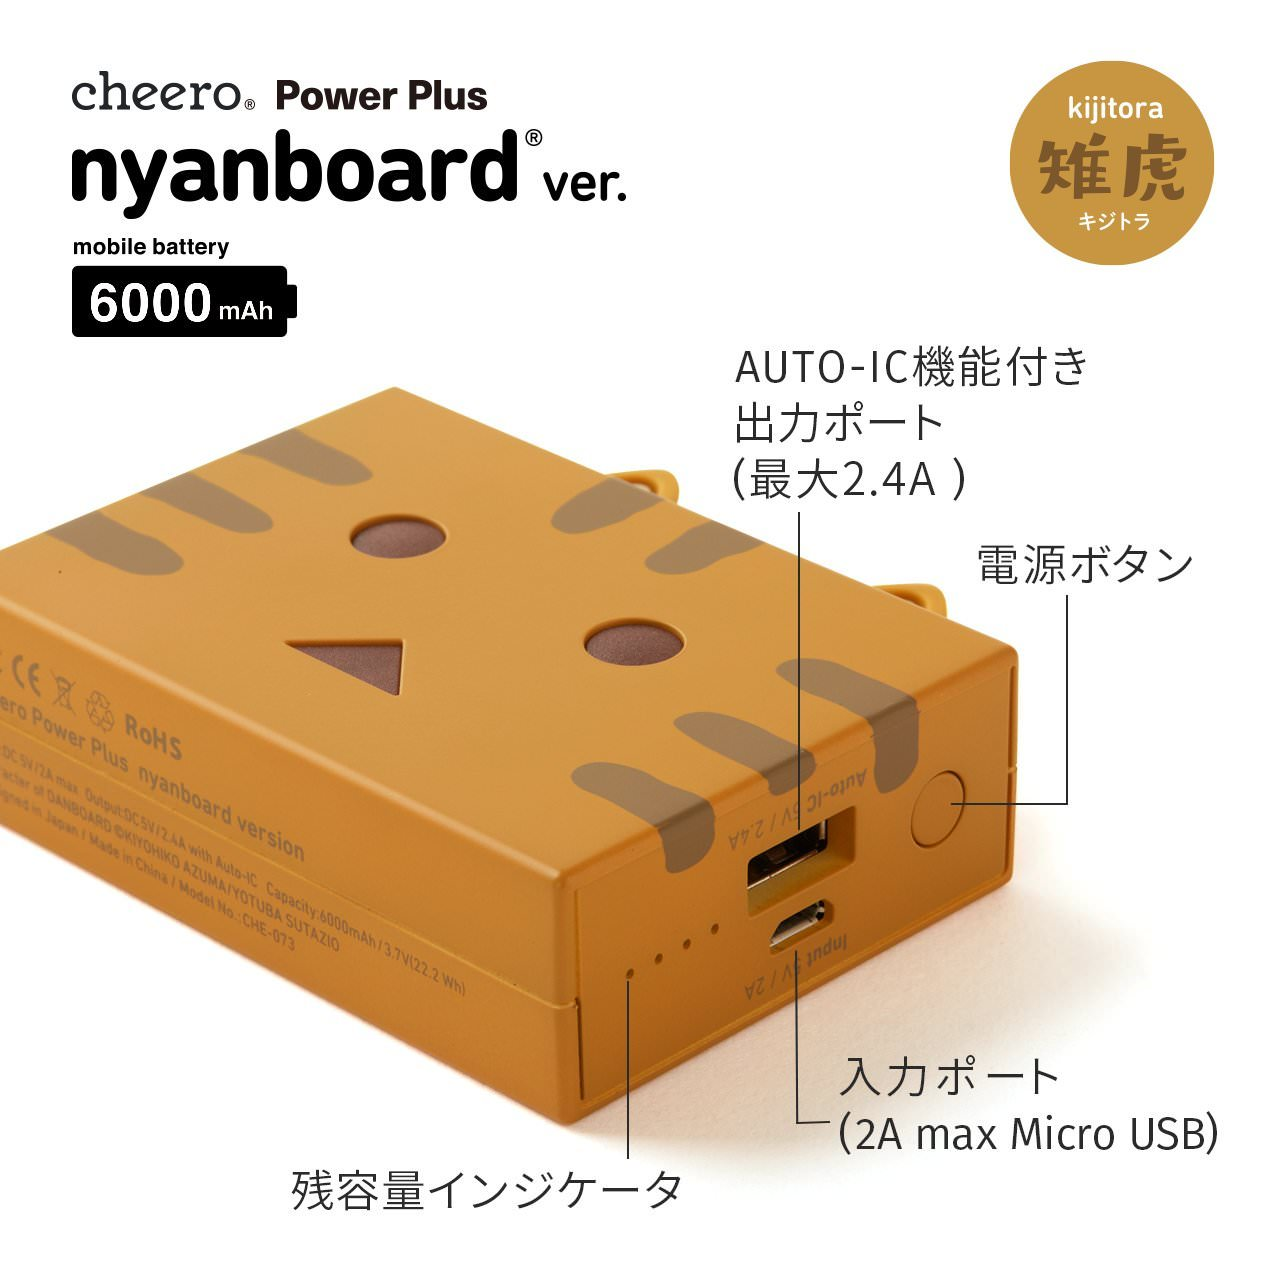 cheero-power-plus-nyanboard-ver_3